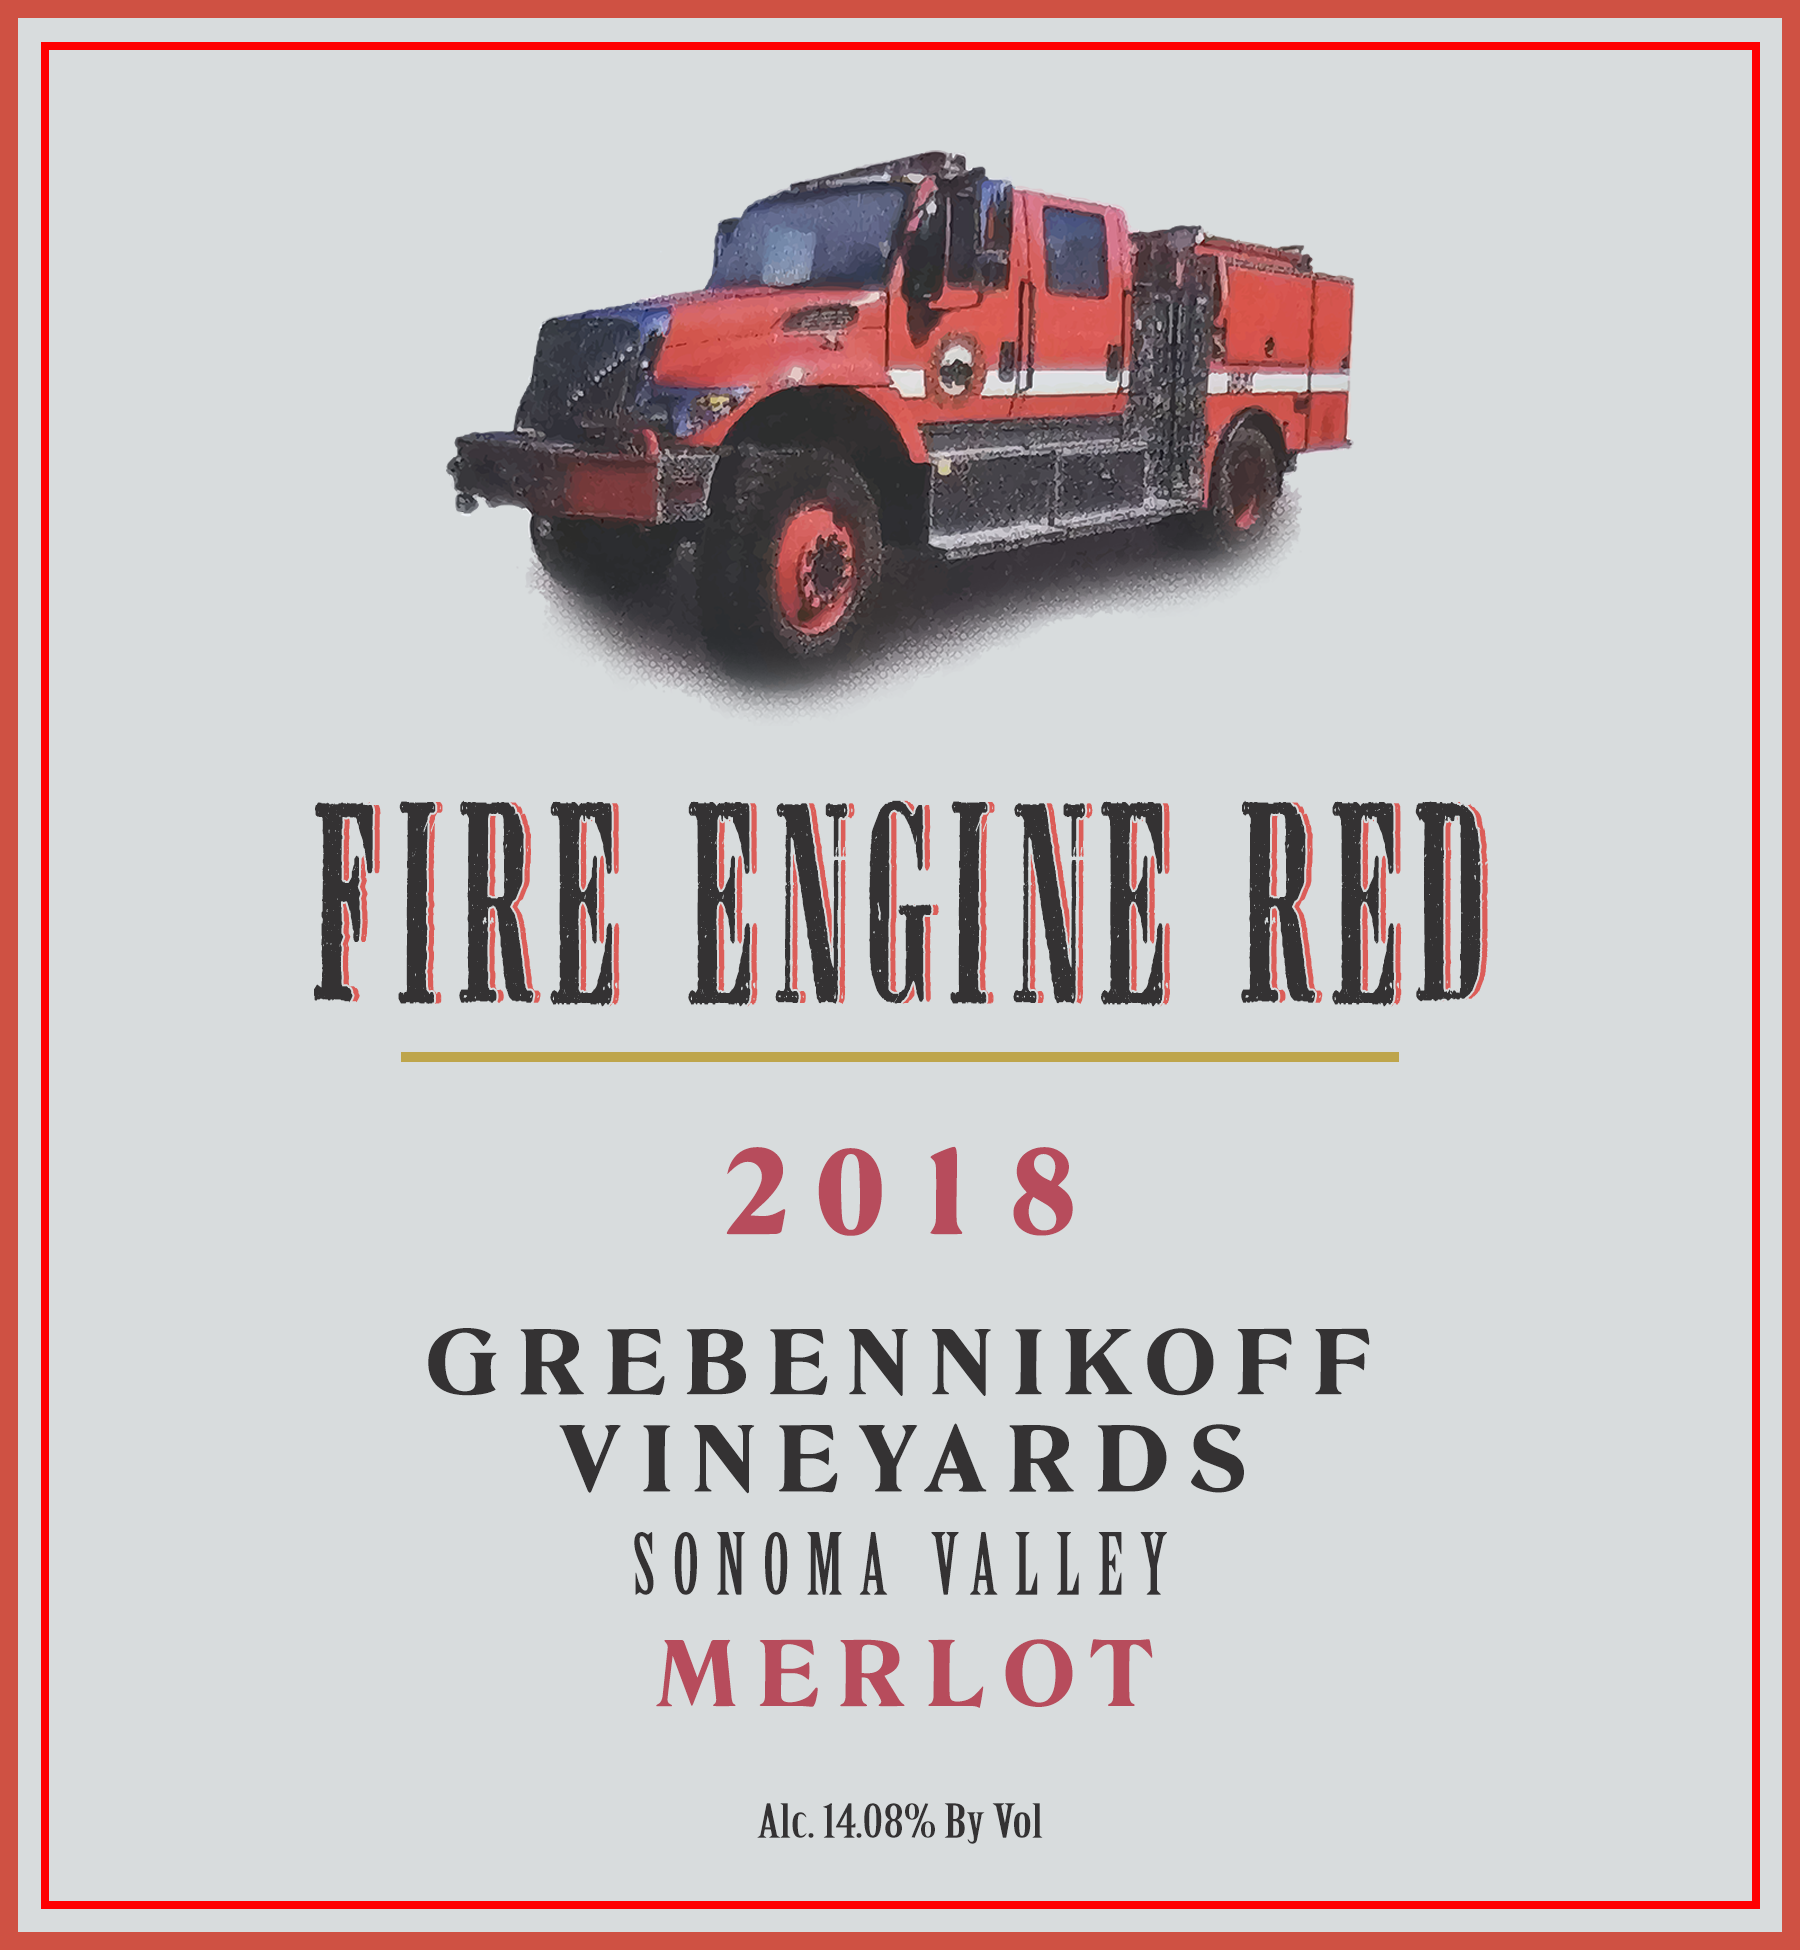 2018 Fire Engine Red